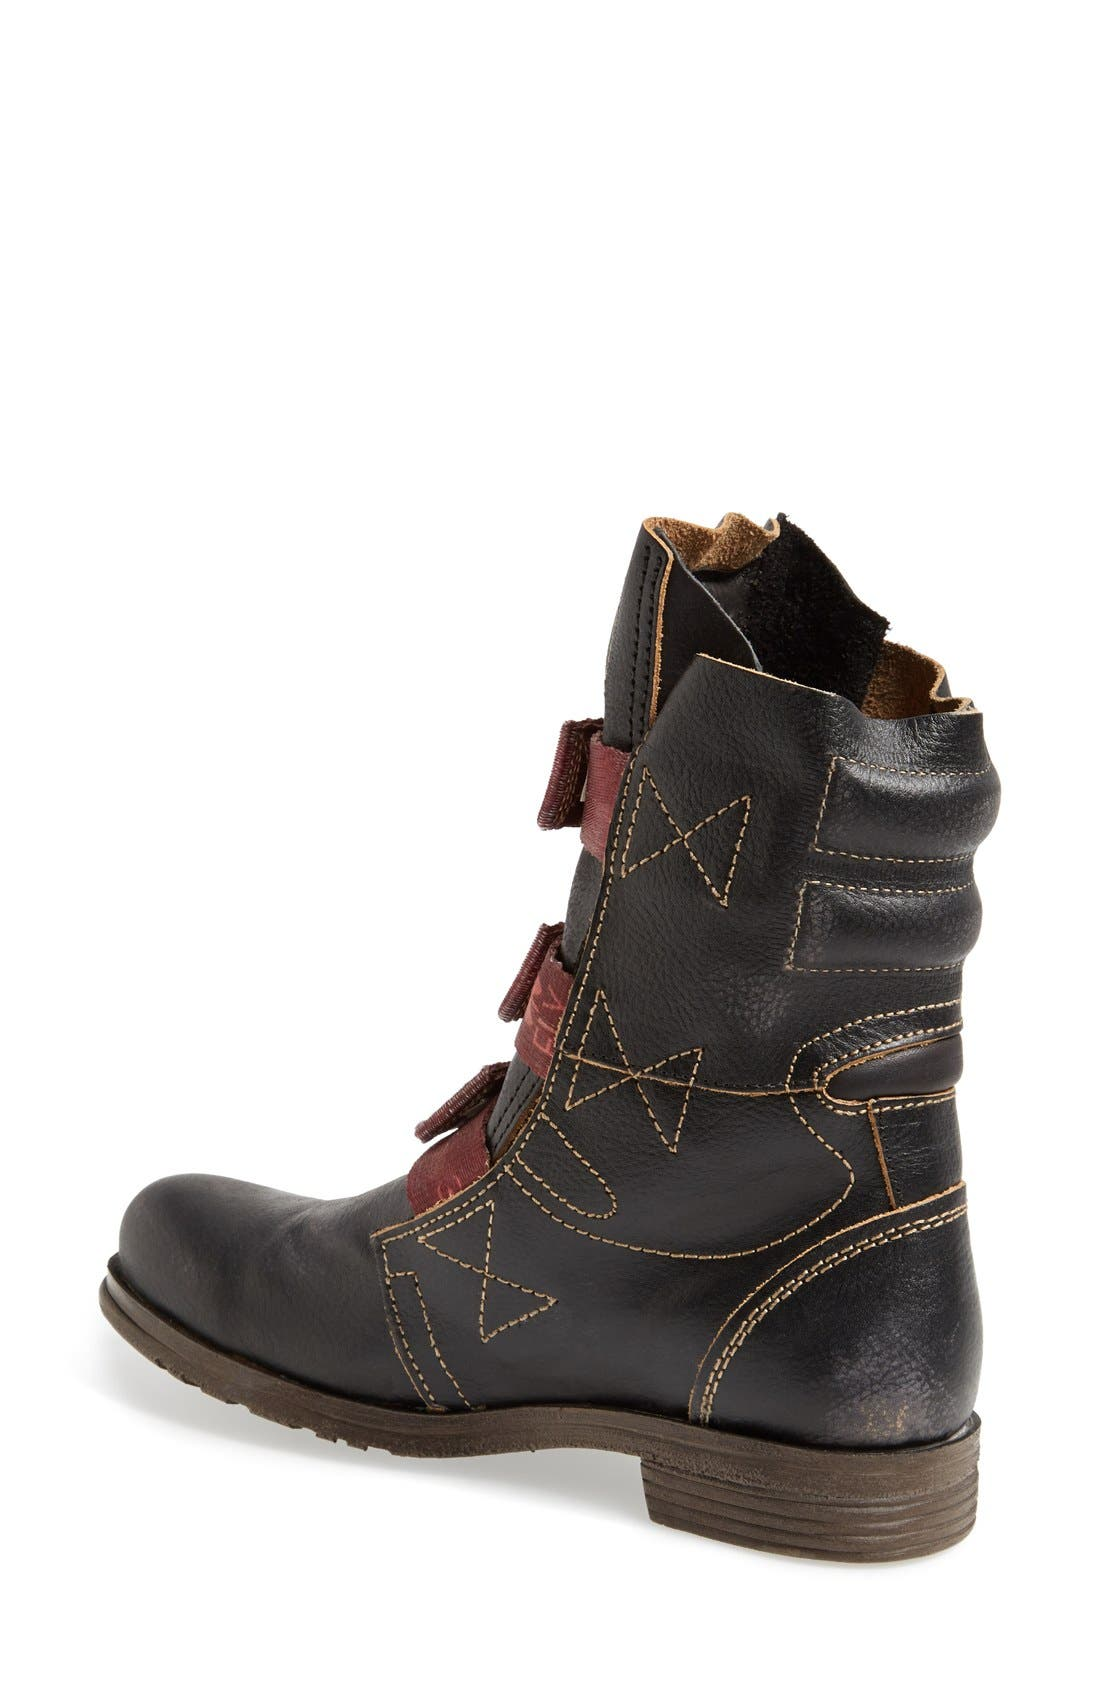 Alternate Image 2  - Fly London 'Stif' Military Boot (Women)